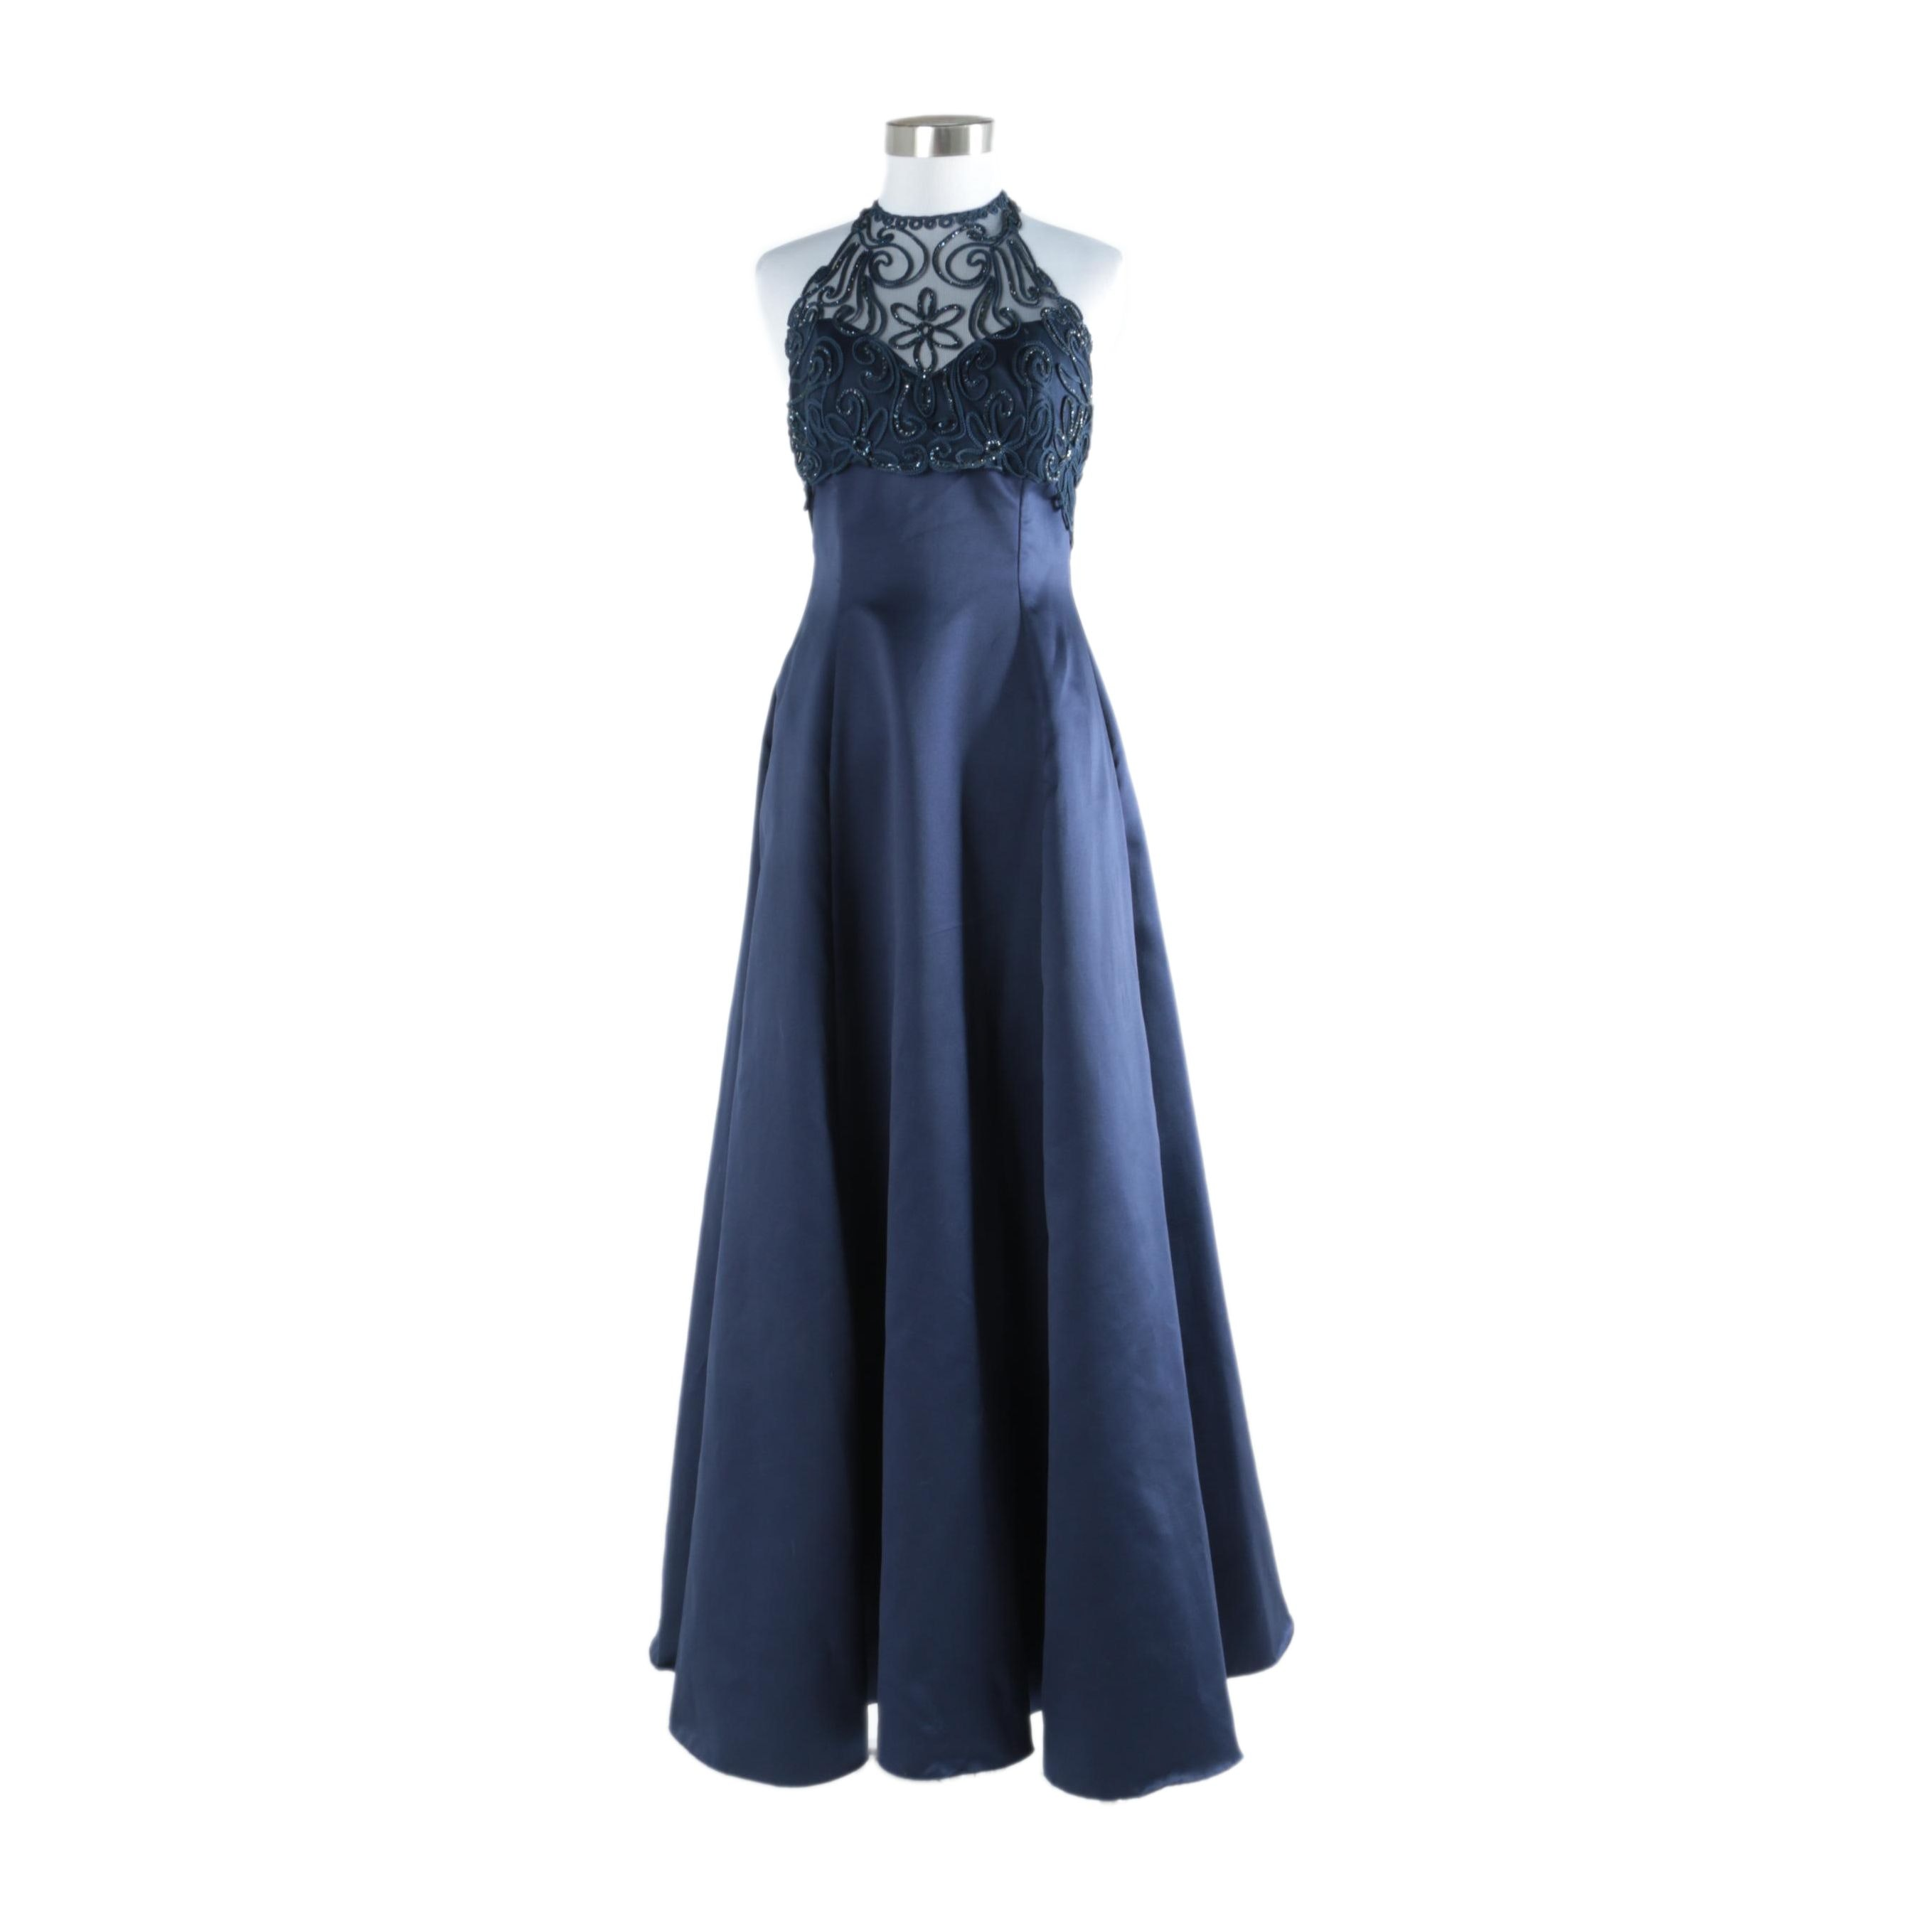 Roberta Occasion Gown with Embellished Bodice